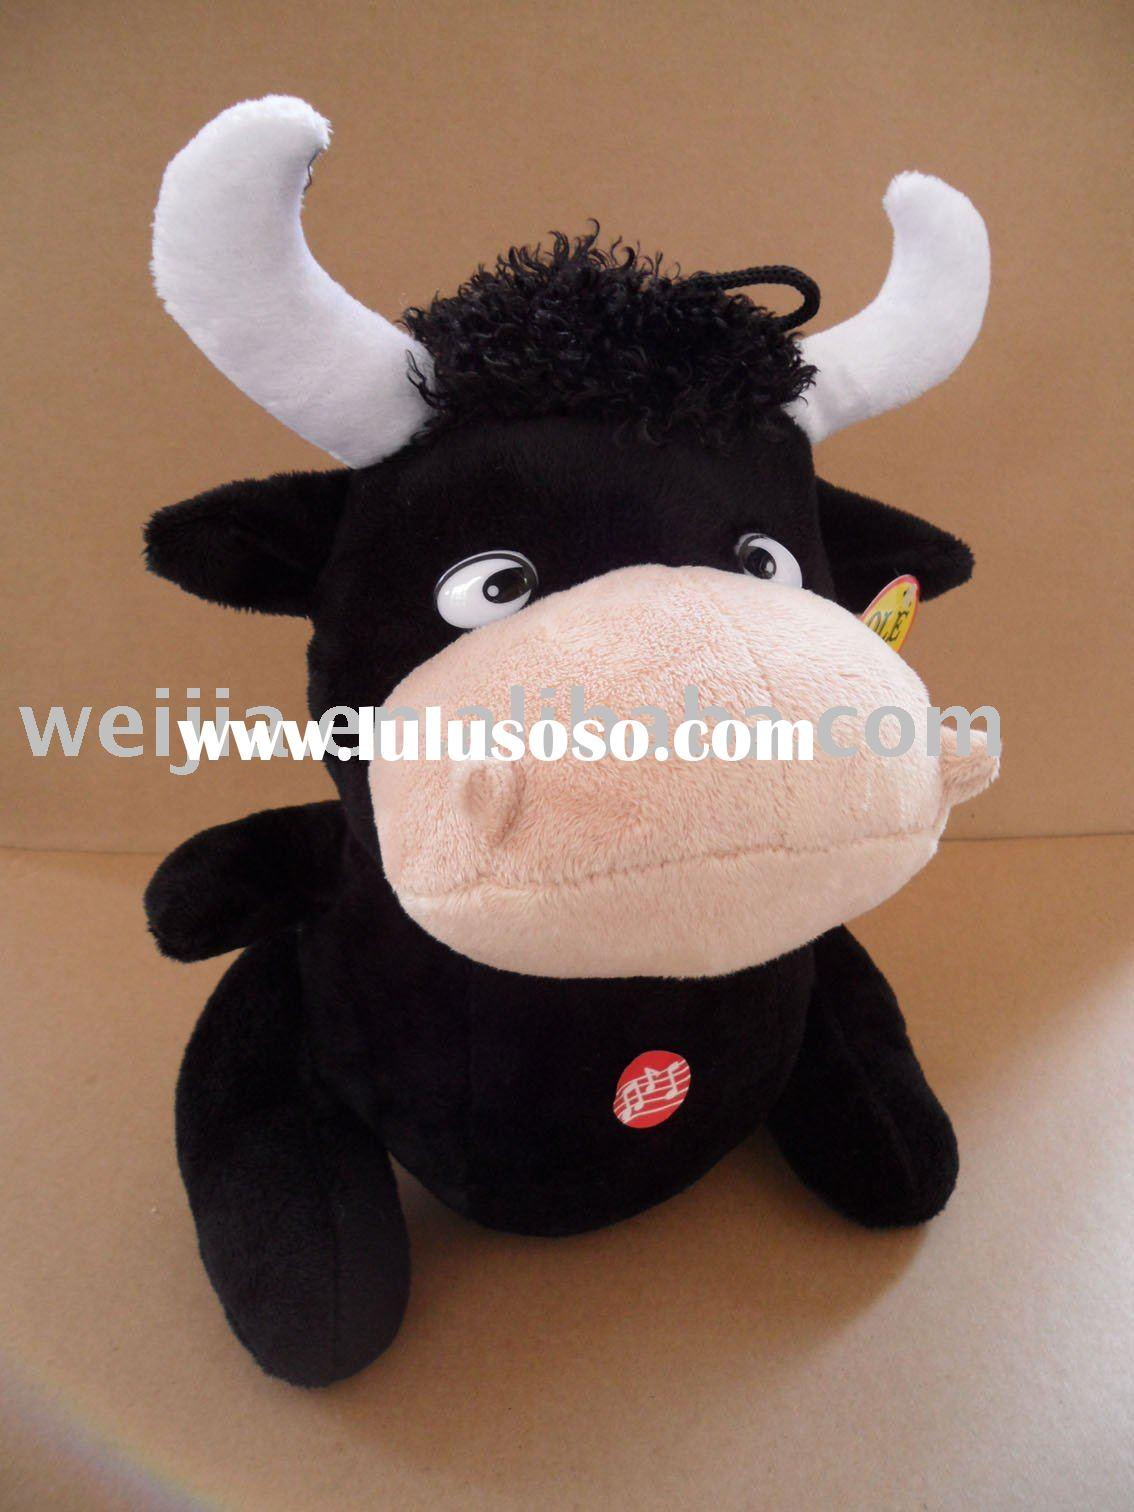 plush baby toy/stuffed baby toy/baby plush toy/plush cow